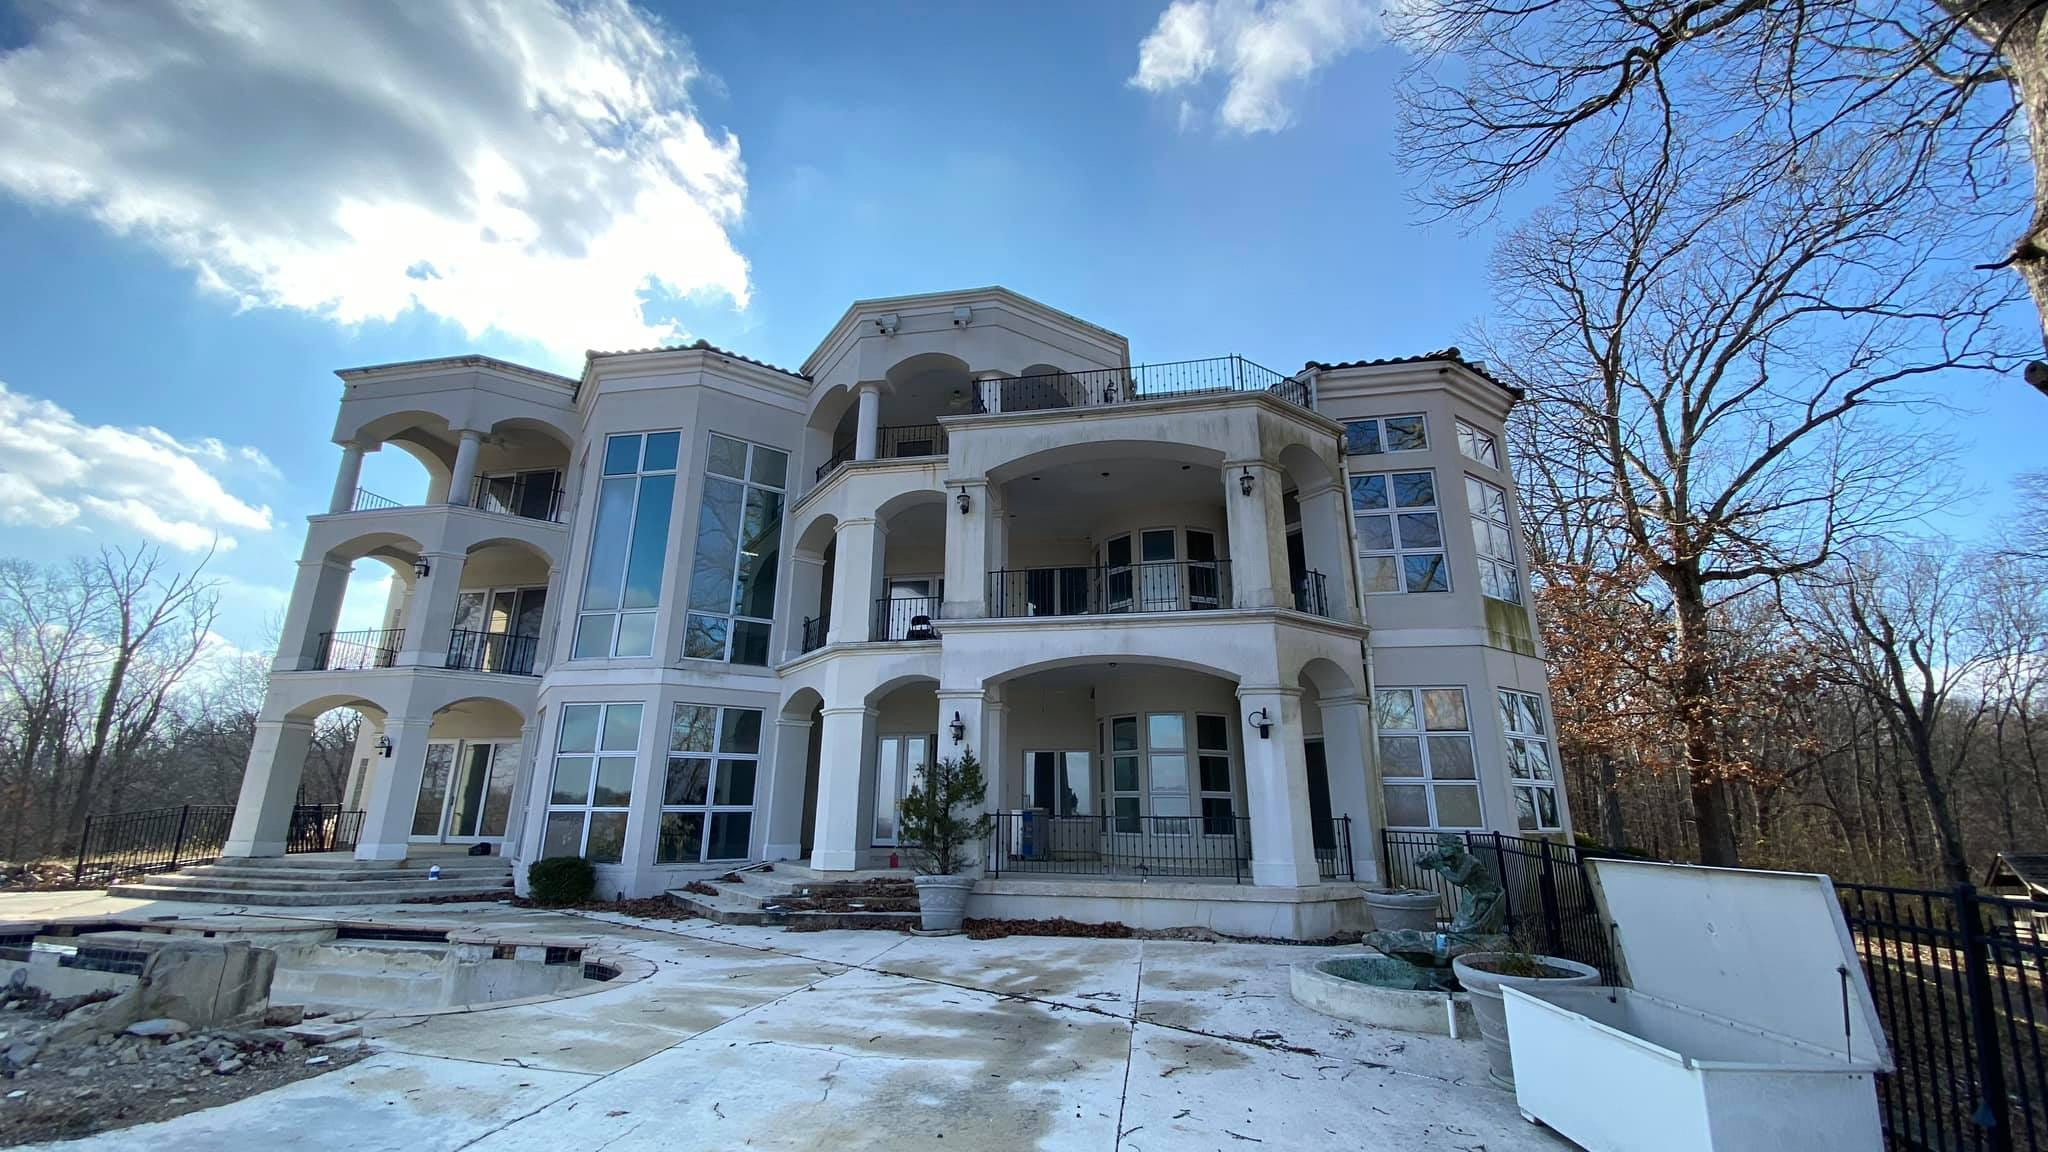 'Needs a ton of work': Nelly's former St. Louis-area home is a real fixer-upper